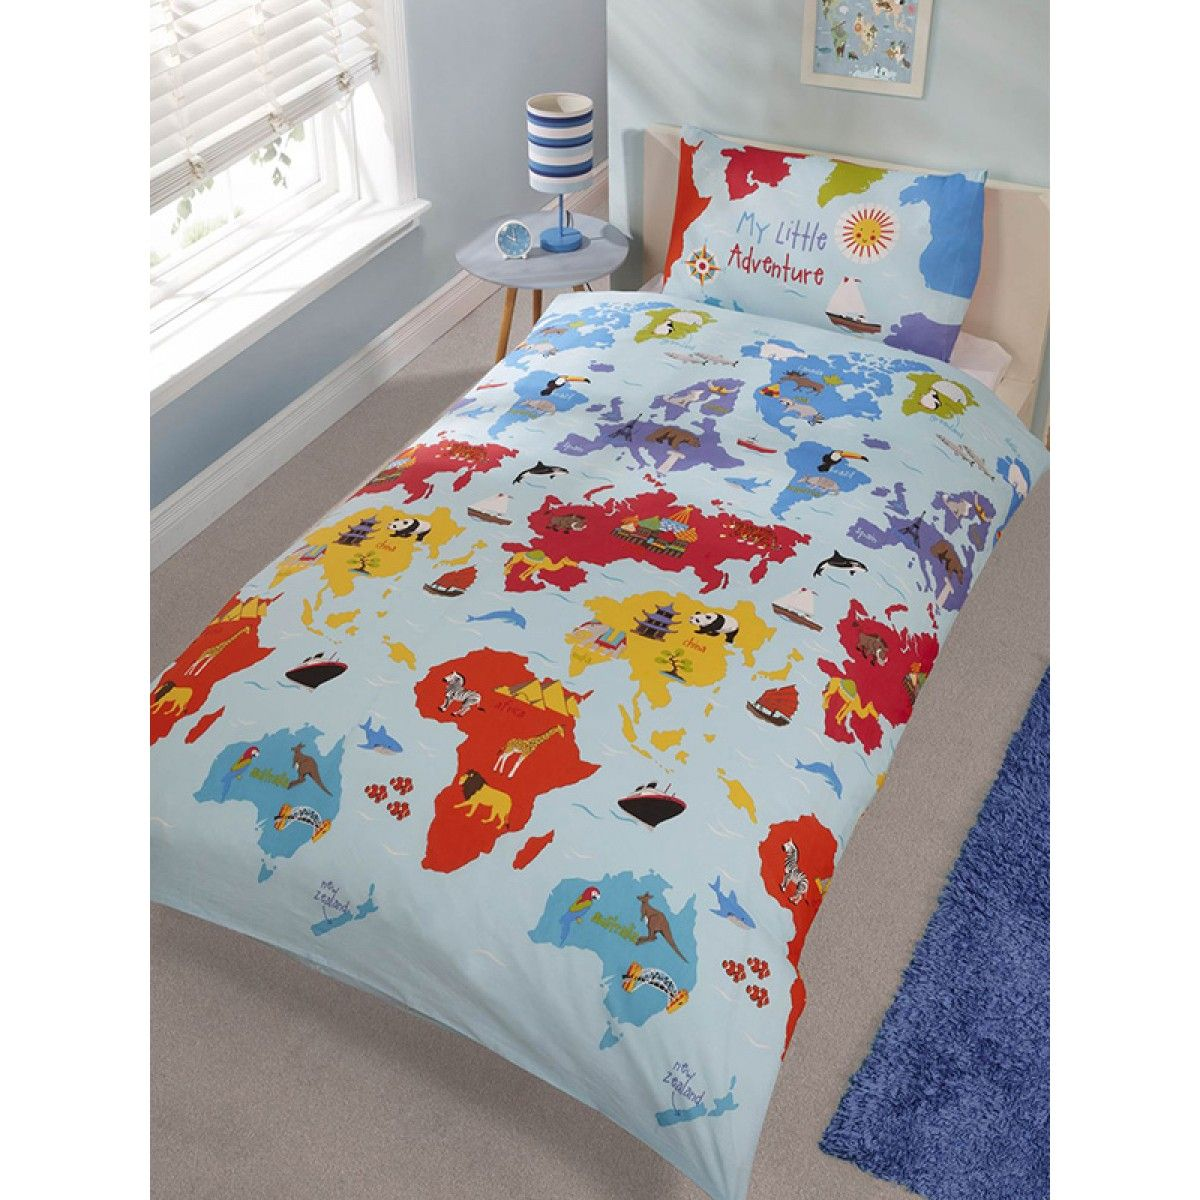 Little adventure single duvet cover and pillowcase set single this little adventure single duvet cover and pillowcase set features a cool world map theme with gumiabroncs Images